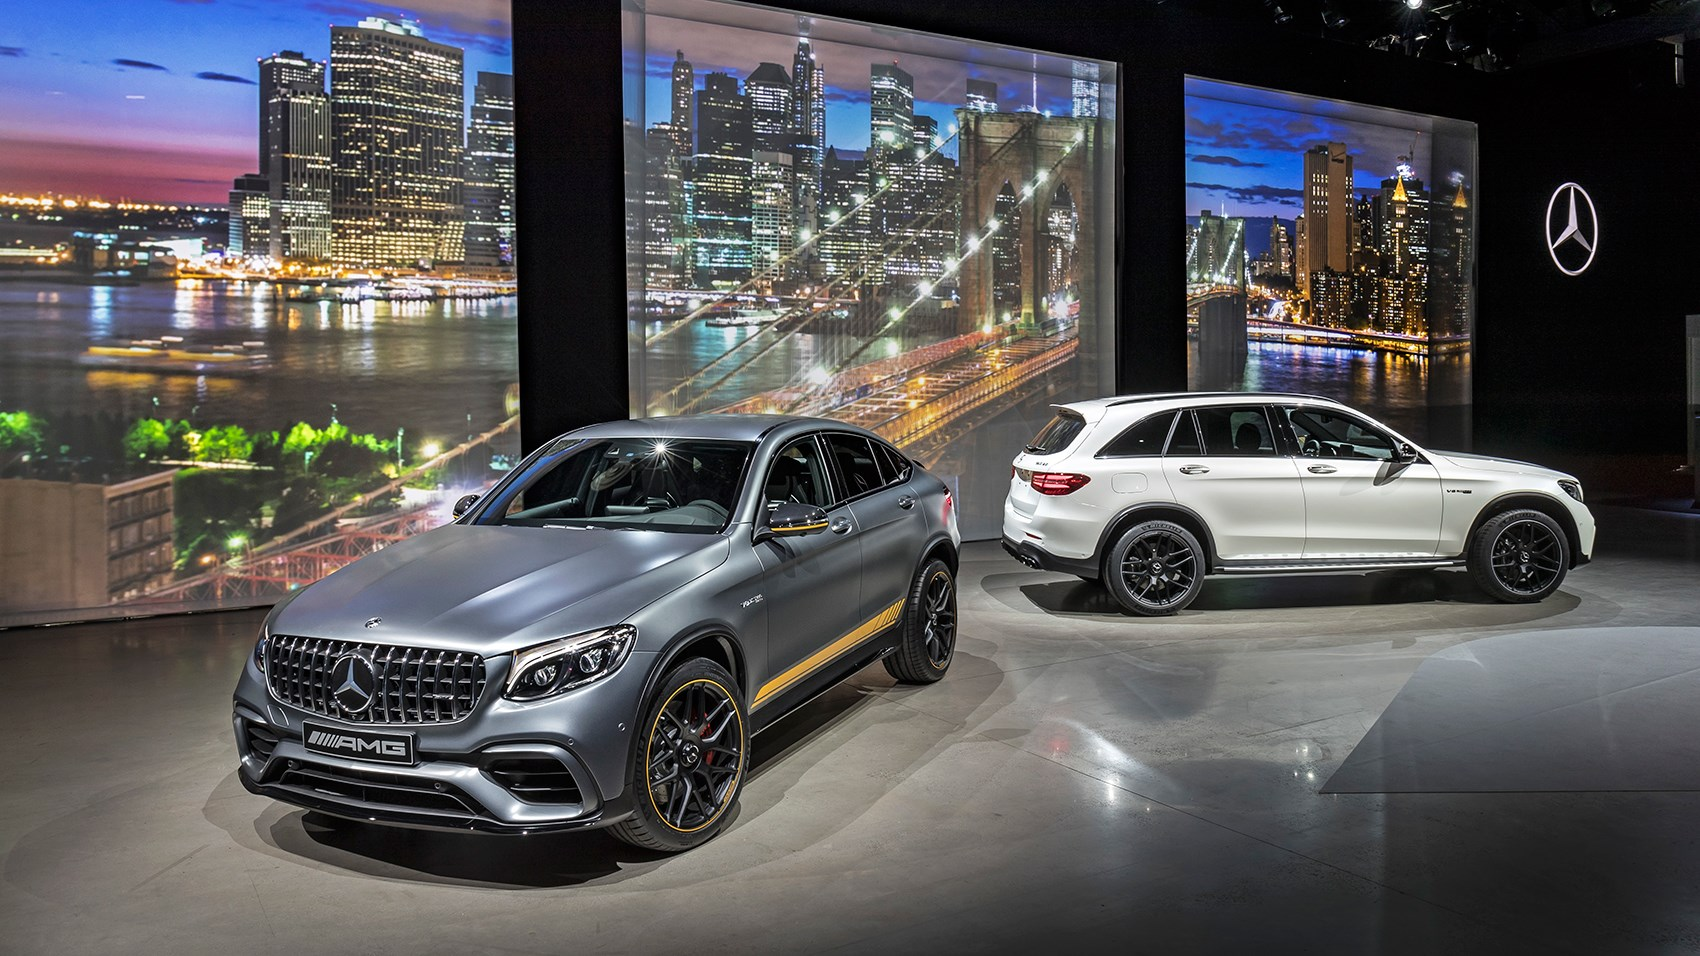 https://car-images.bauersecure.com/pagefiles/71329/4_mercedesamg_glc63.jpg